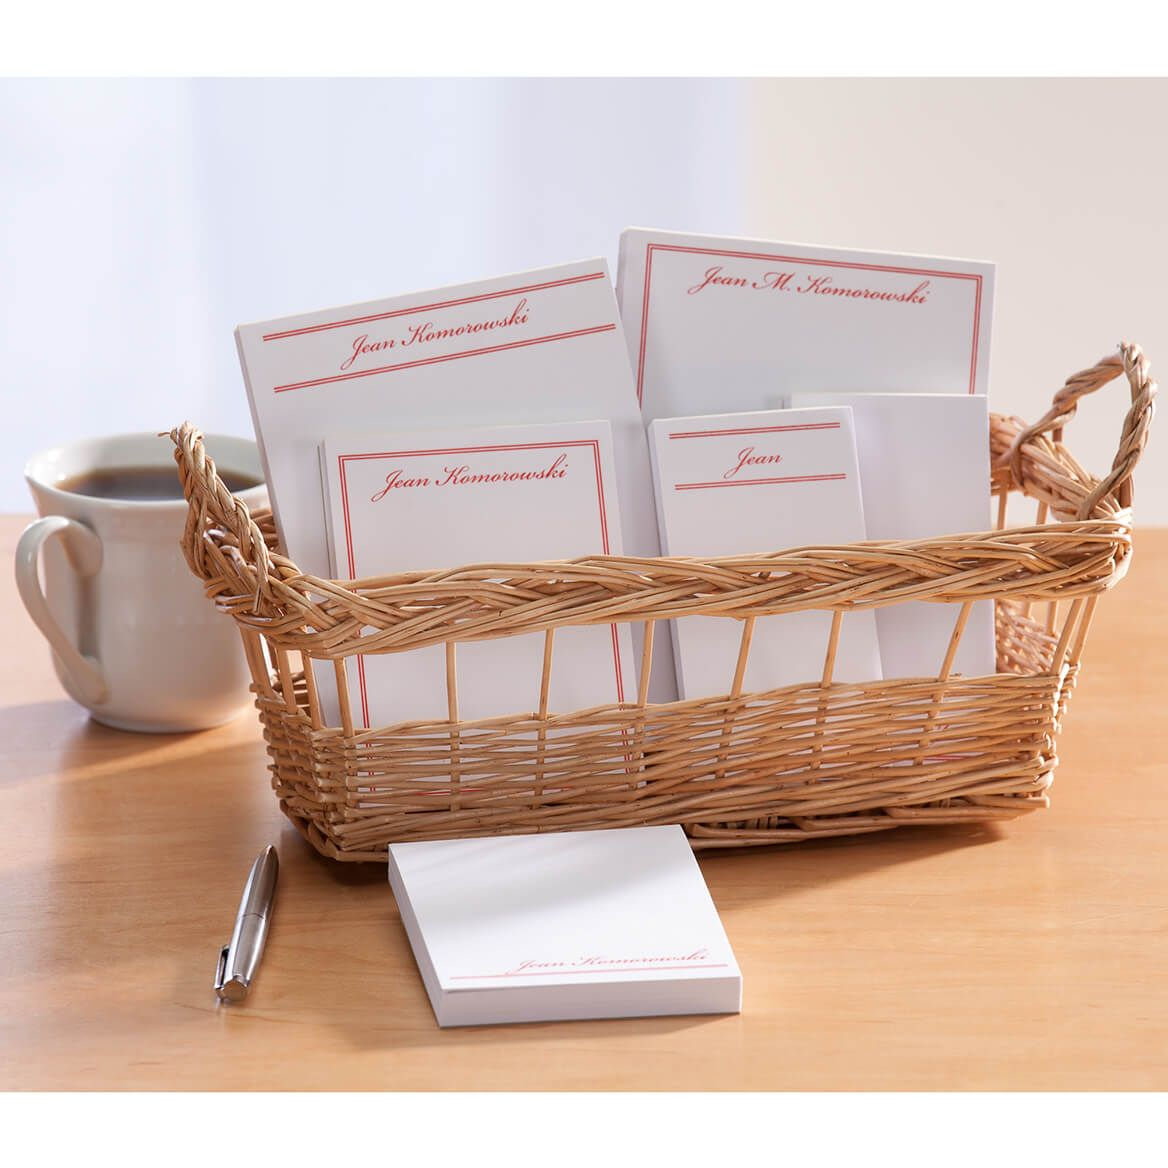 Personalized Classic Basketful of Notepads-346377